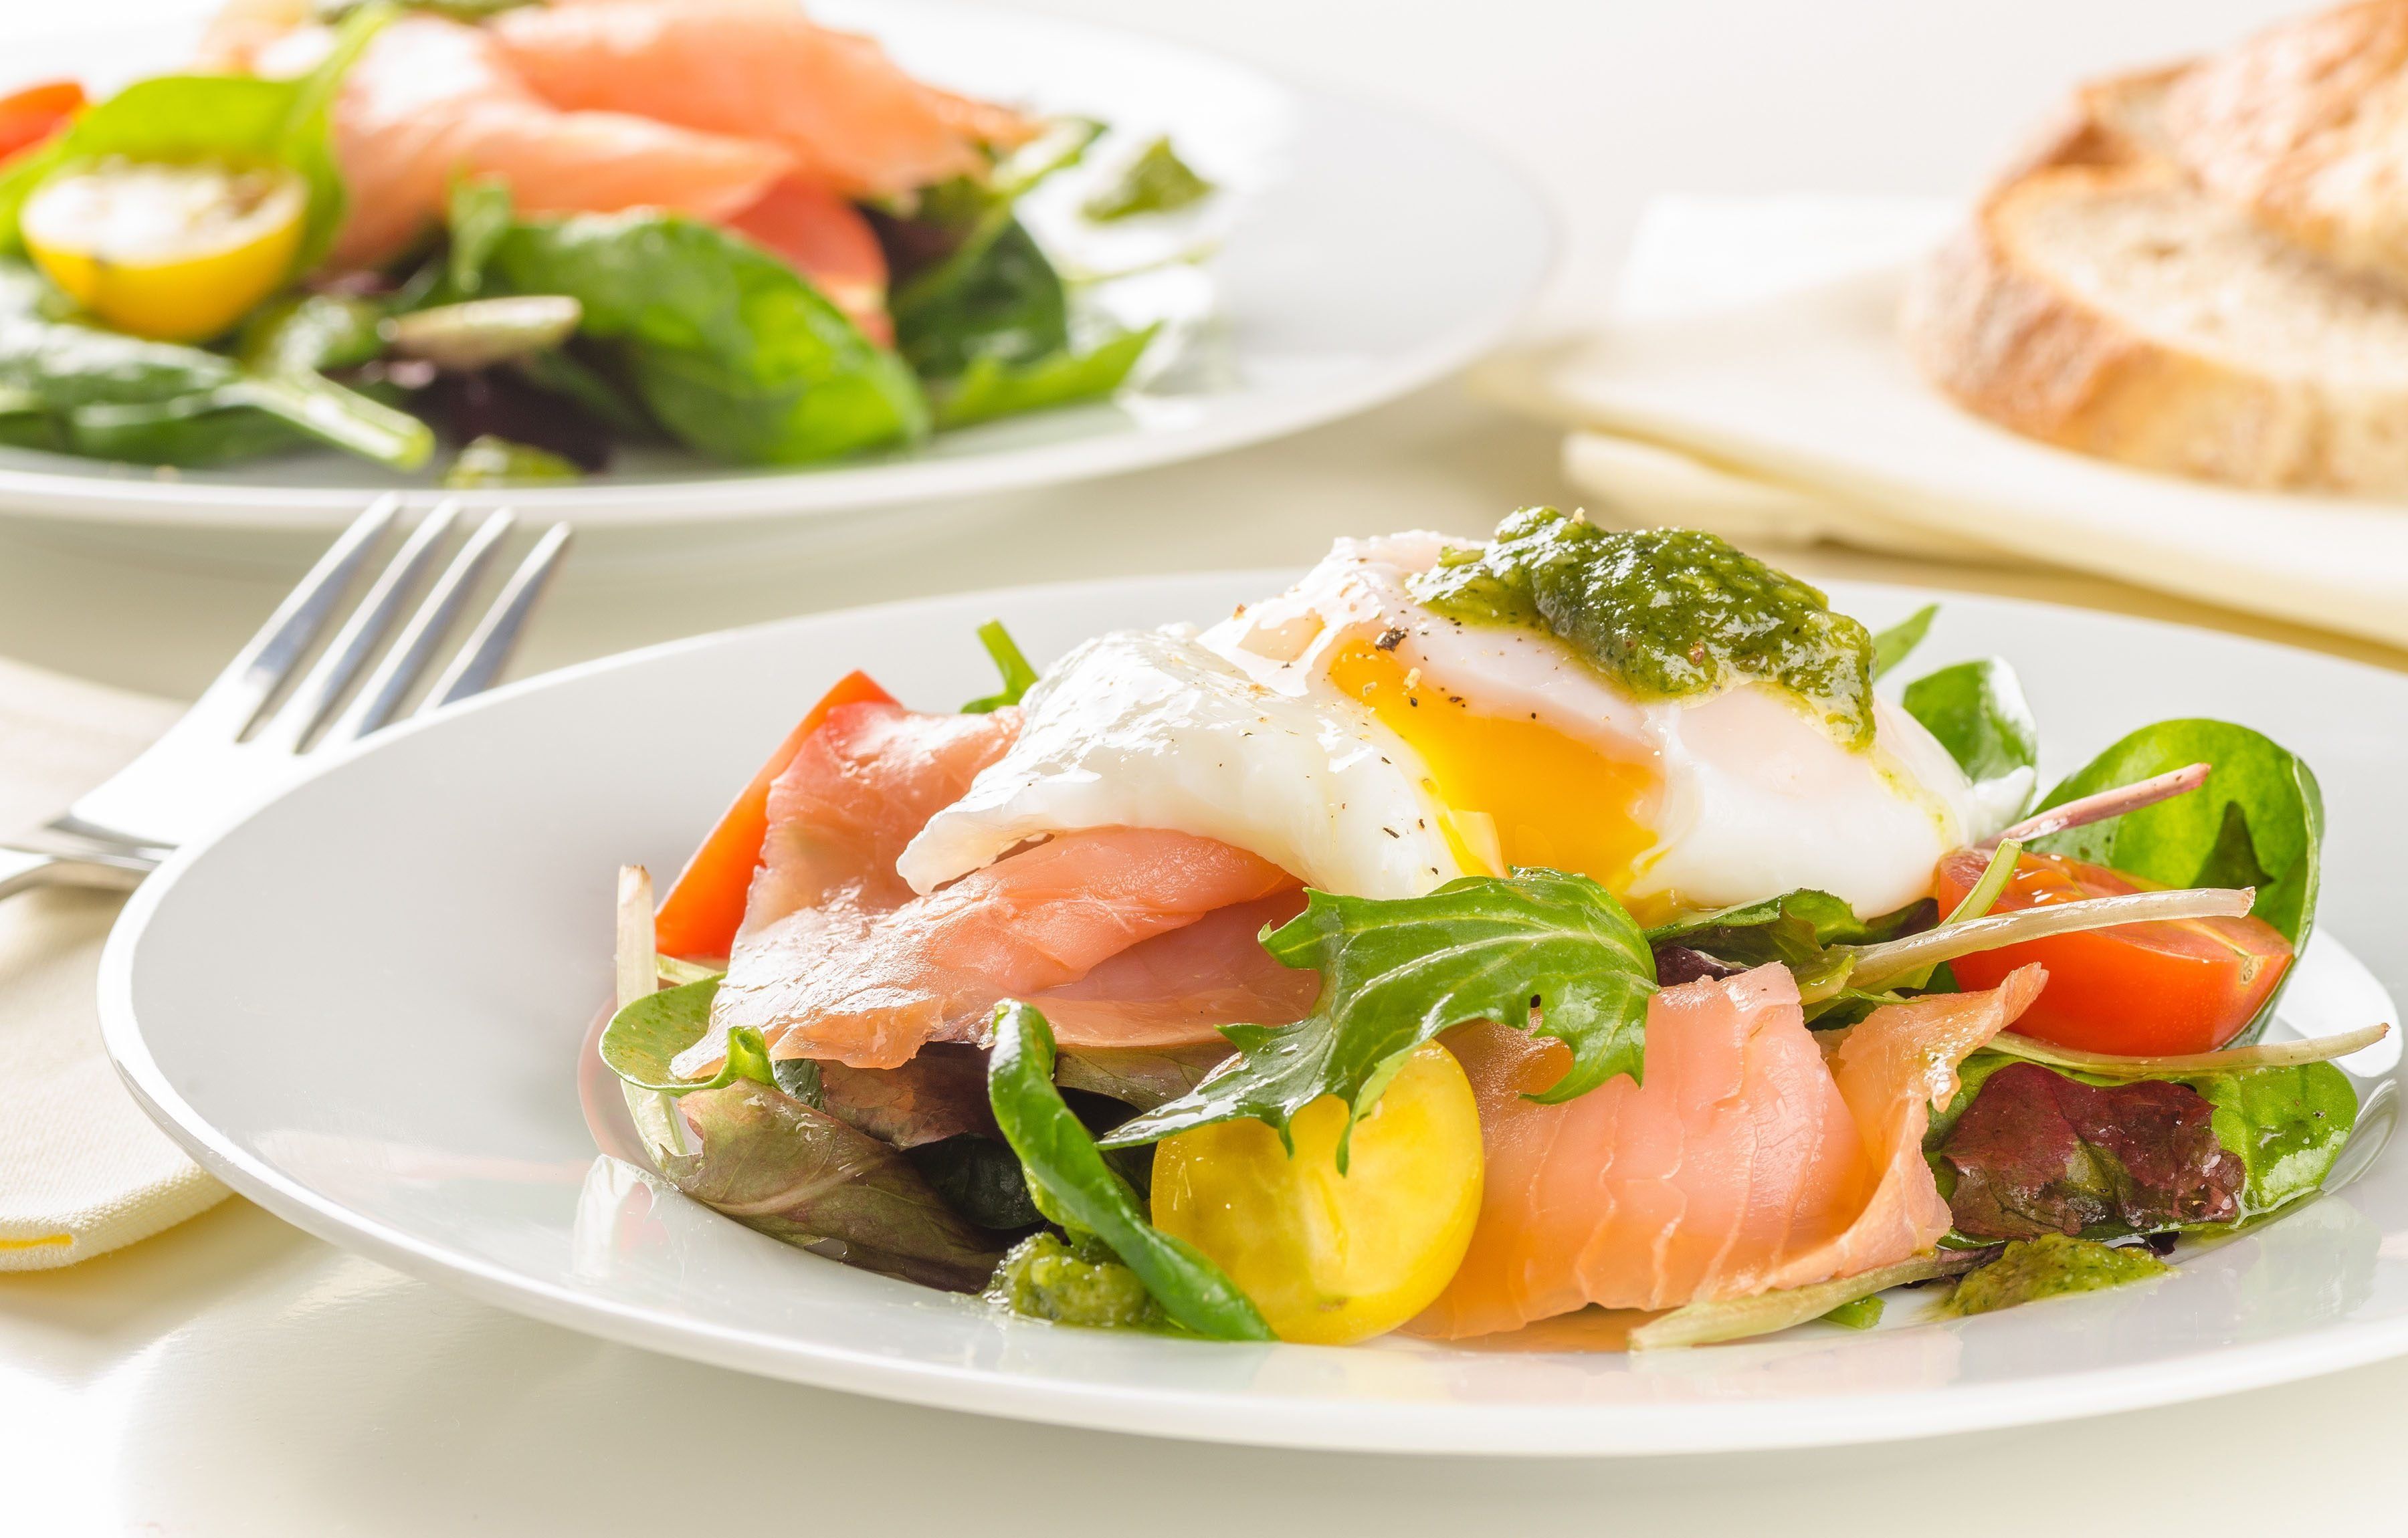 Breakfast Salad with Poached Eggs and Smoked Salmon | Reader's Digest